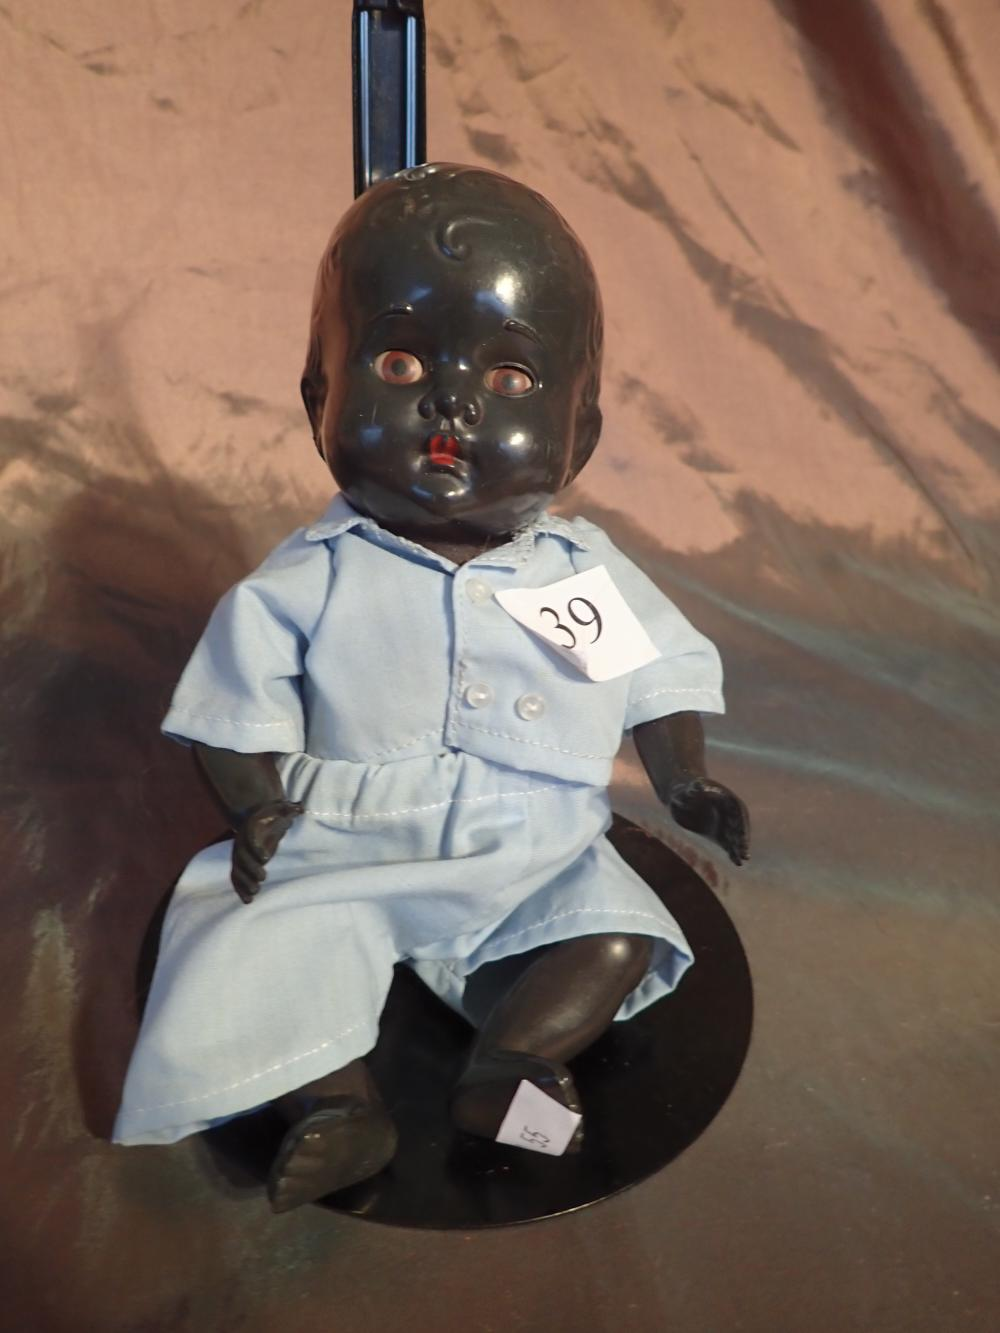 "10"" BROWN DOLL - MARKED SUZY - DRESSED IN SHIRT AND PANTS - OFF BACK IS MADE IN AUSTRALIA, IS RARE IN GOOD CONDITION"